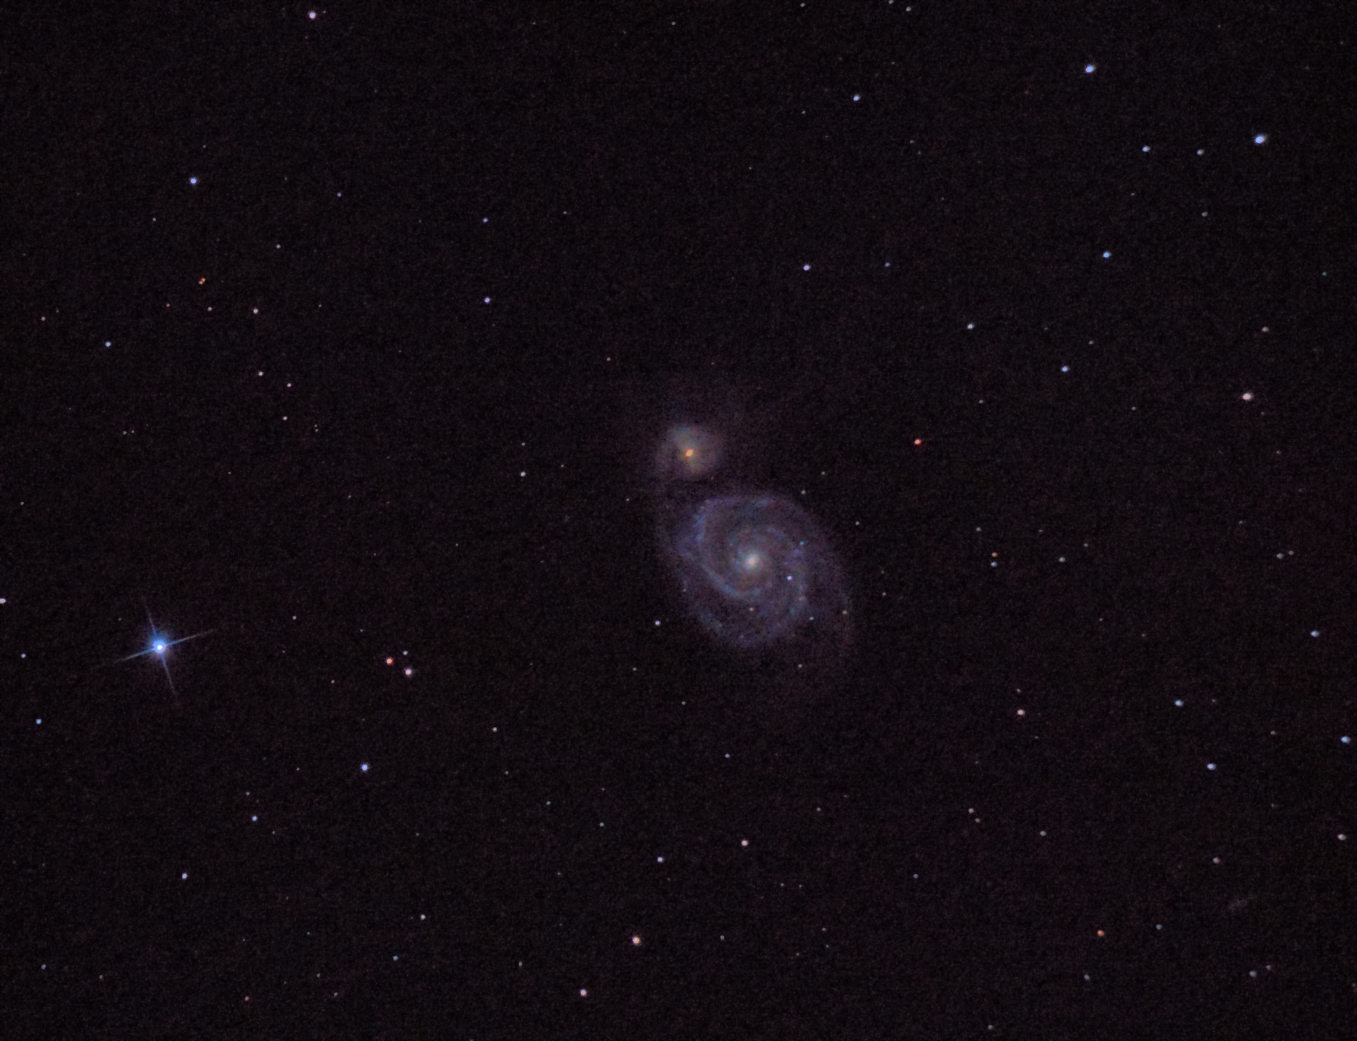 M51 Whirlpool Galaxy. 750mm F/5. 2 min 30 s ISO 800 unguided. Skywatcher 150P and Nikon D3200